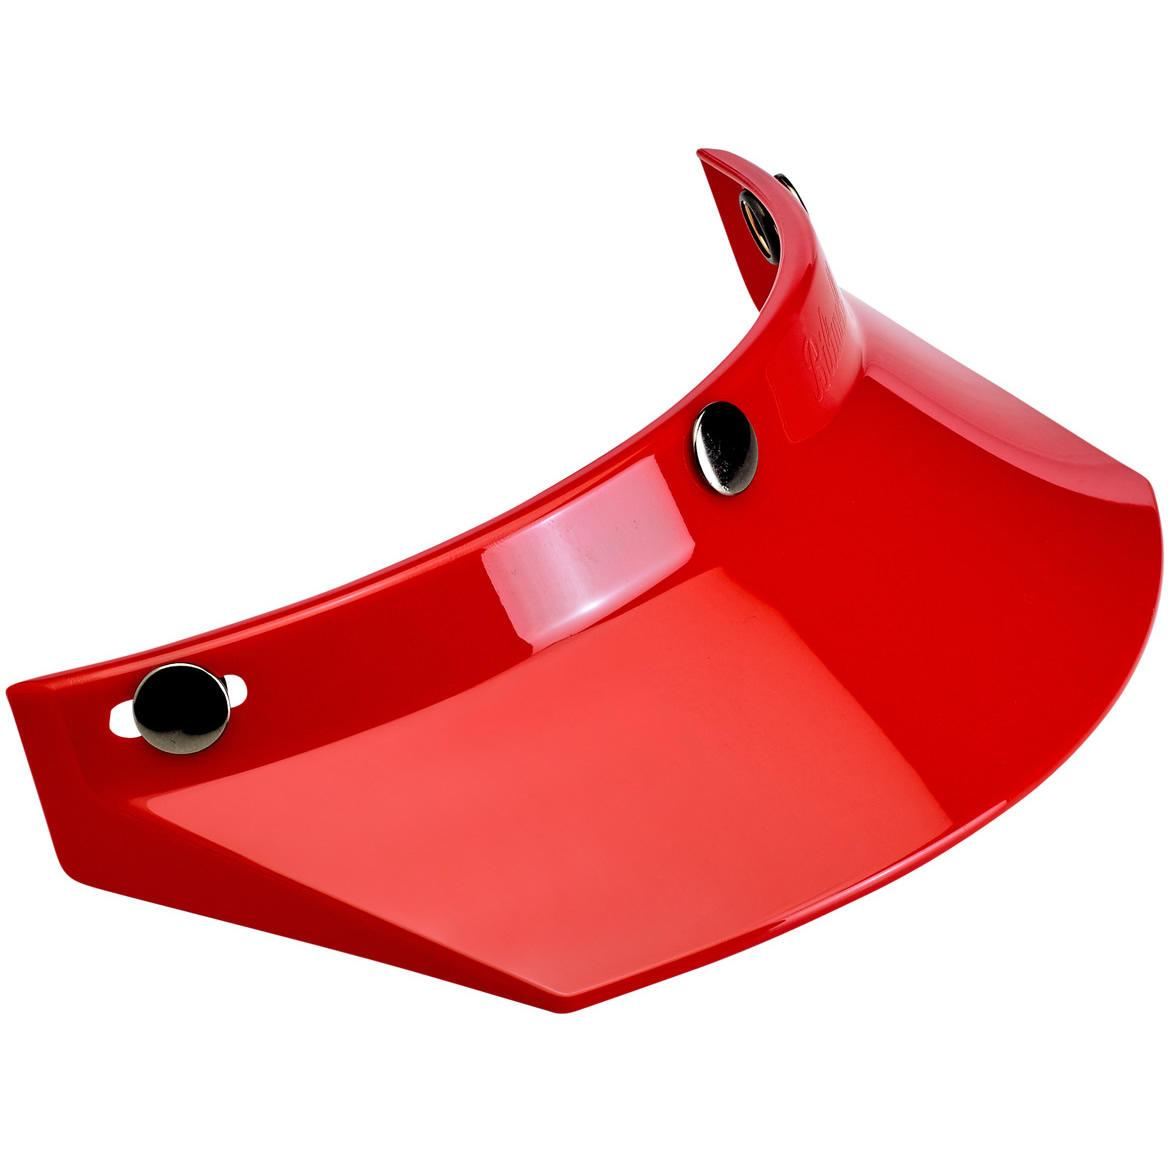 Biltwell Open Face Motorcycle Helmet Moto Visor Peak - Red